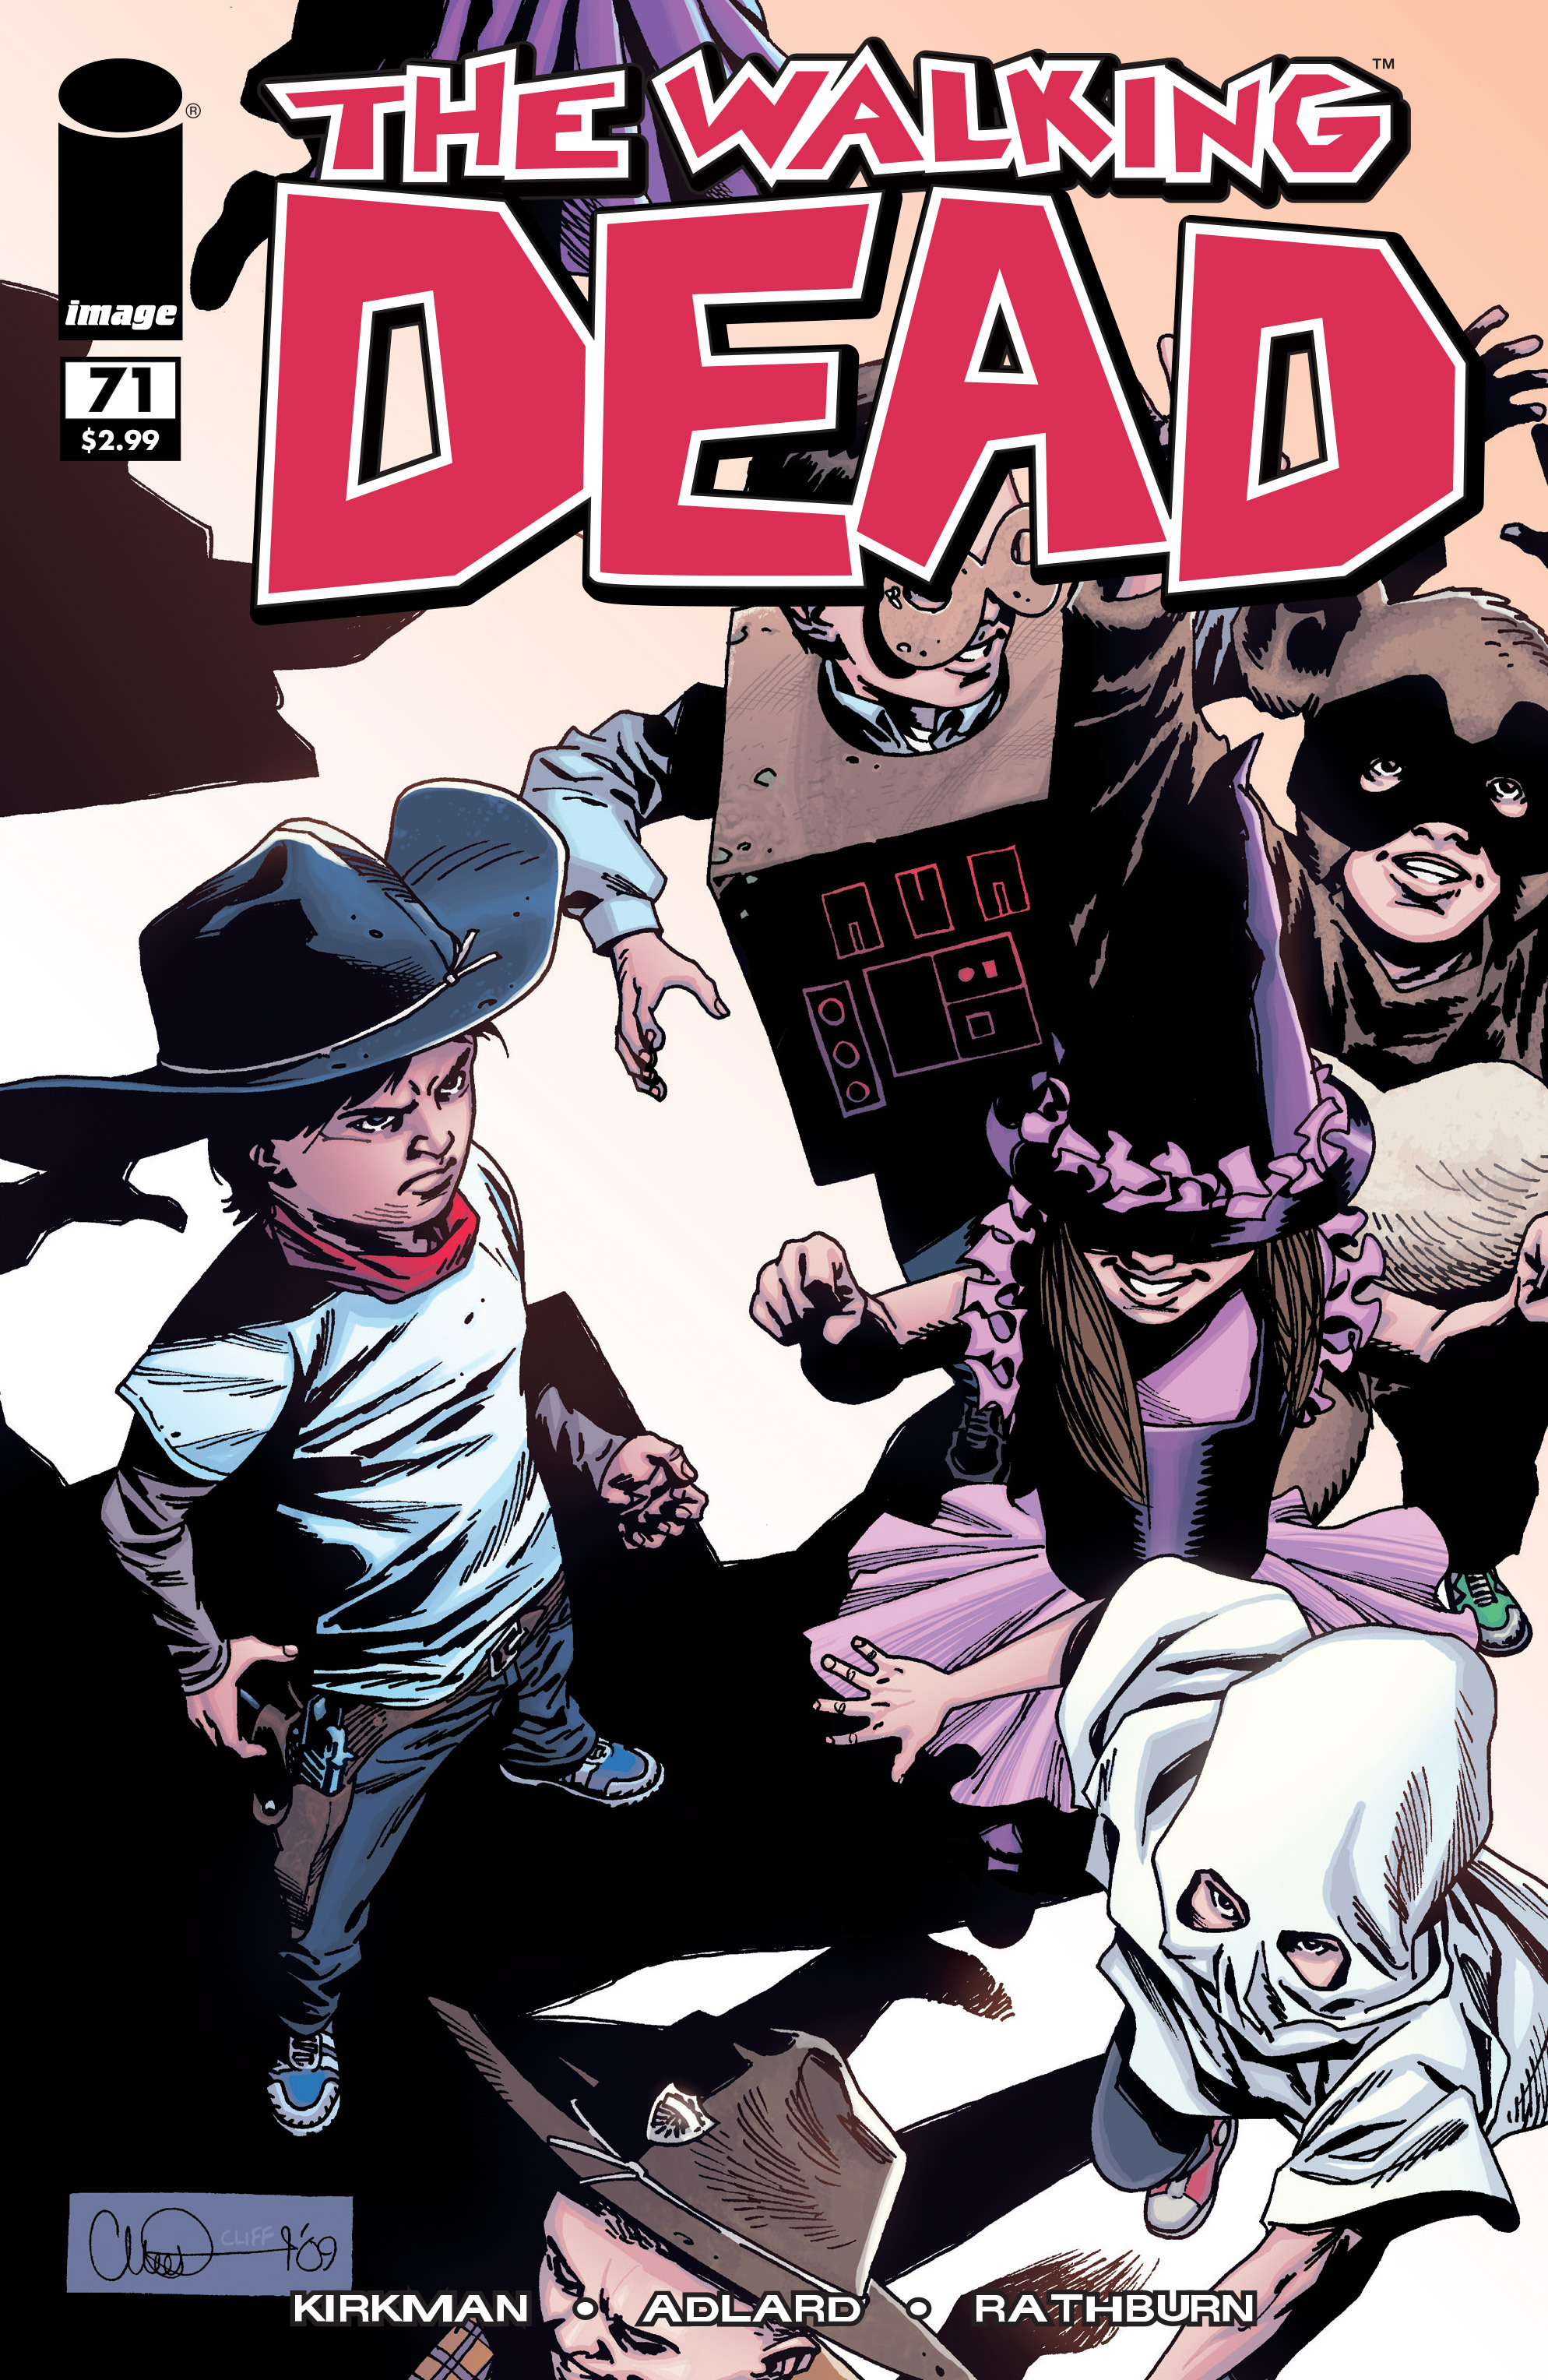 The Walking Dead 71 Page 1